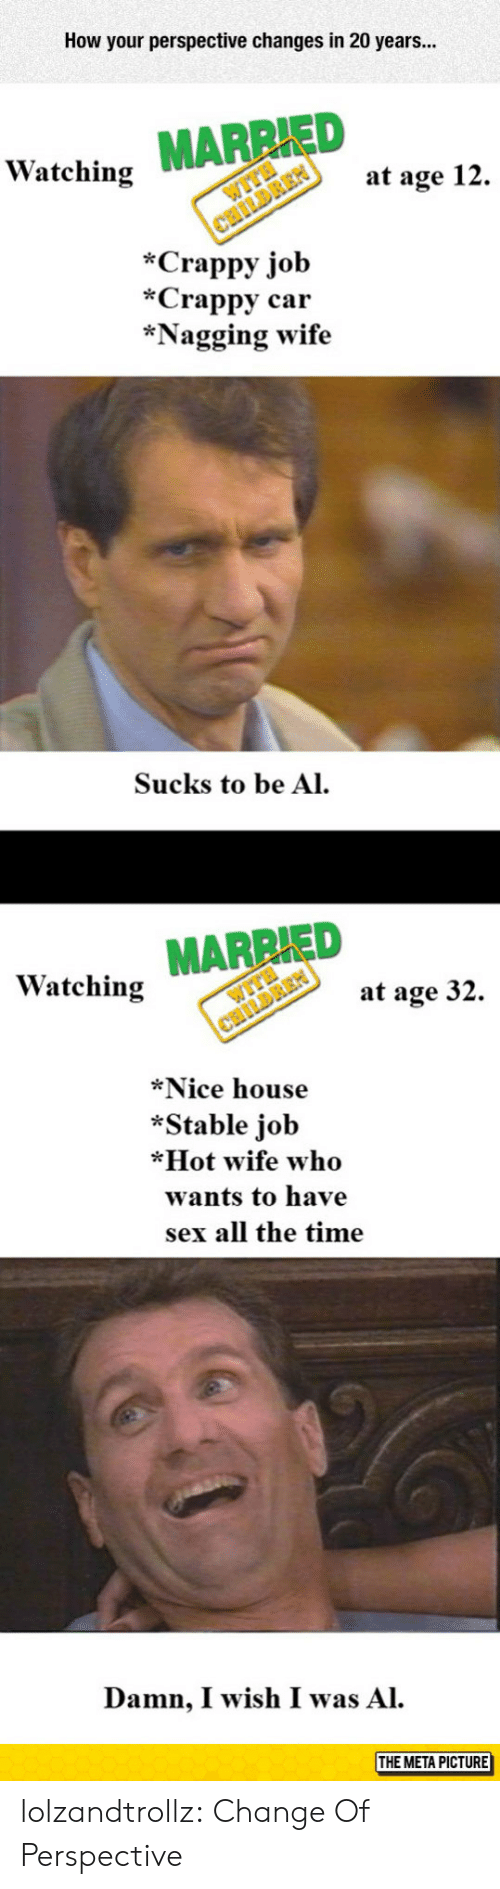 Sex, Tumblr, and Blog: How your perspective changes in 20 years...  ED  Watching  at age 12.  *Crappy job  *Crappy car  *Nagging wife  Sucks to be Al  Watching MARRIED  at age 32.  *Nice house  *Stable job  *Hot wife who  wants to have  sex all the time  Damn, I wish I was Al.  THE META PICTURE  МЕТАРіст lolzandtrollz:  Change Of Perspective